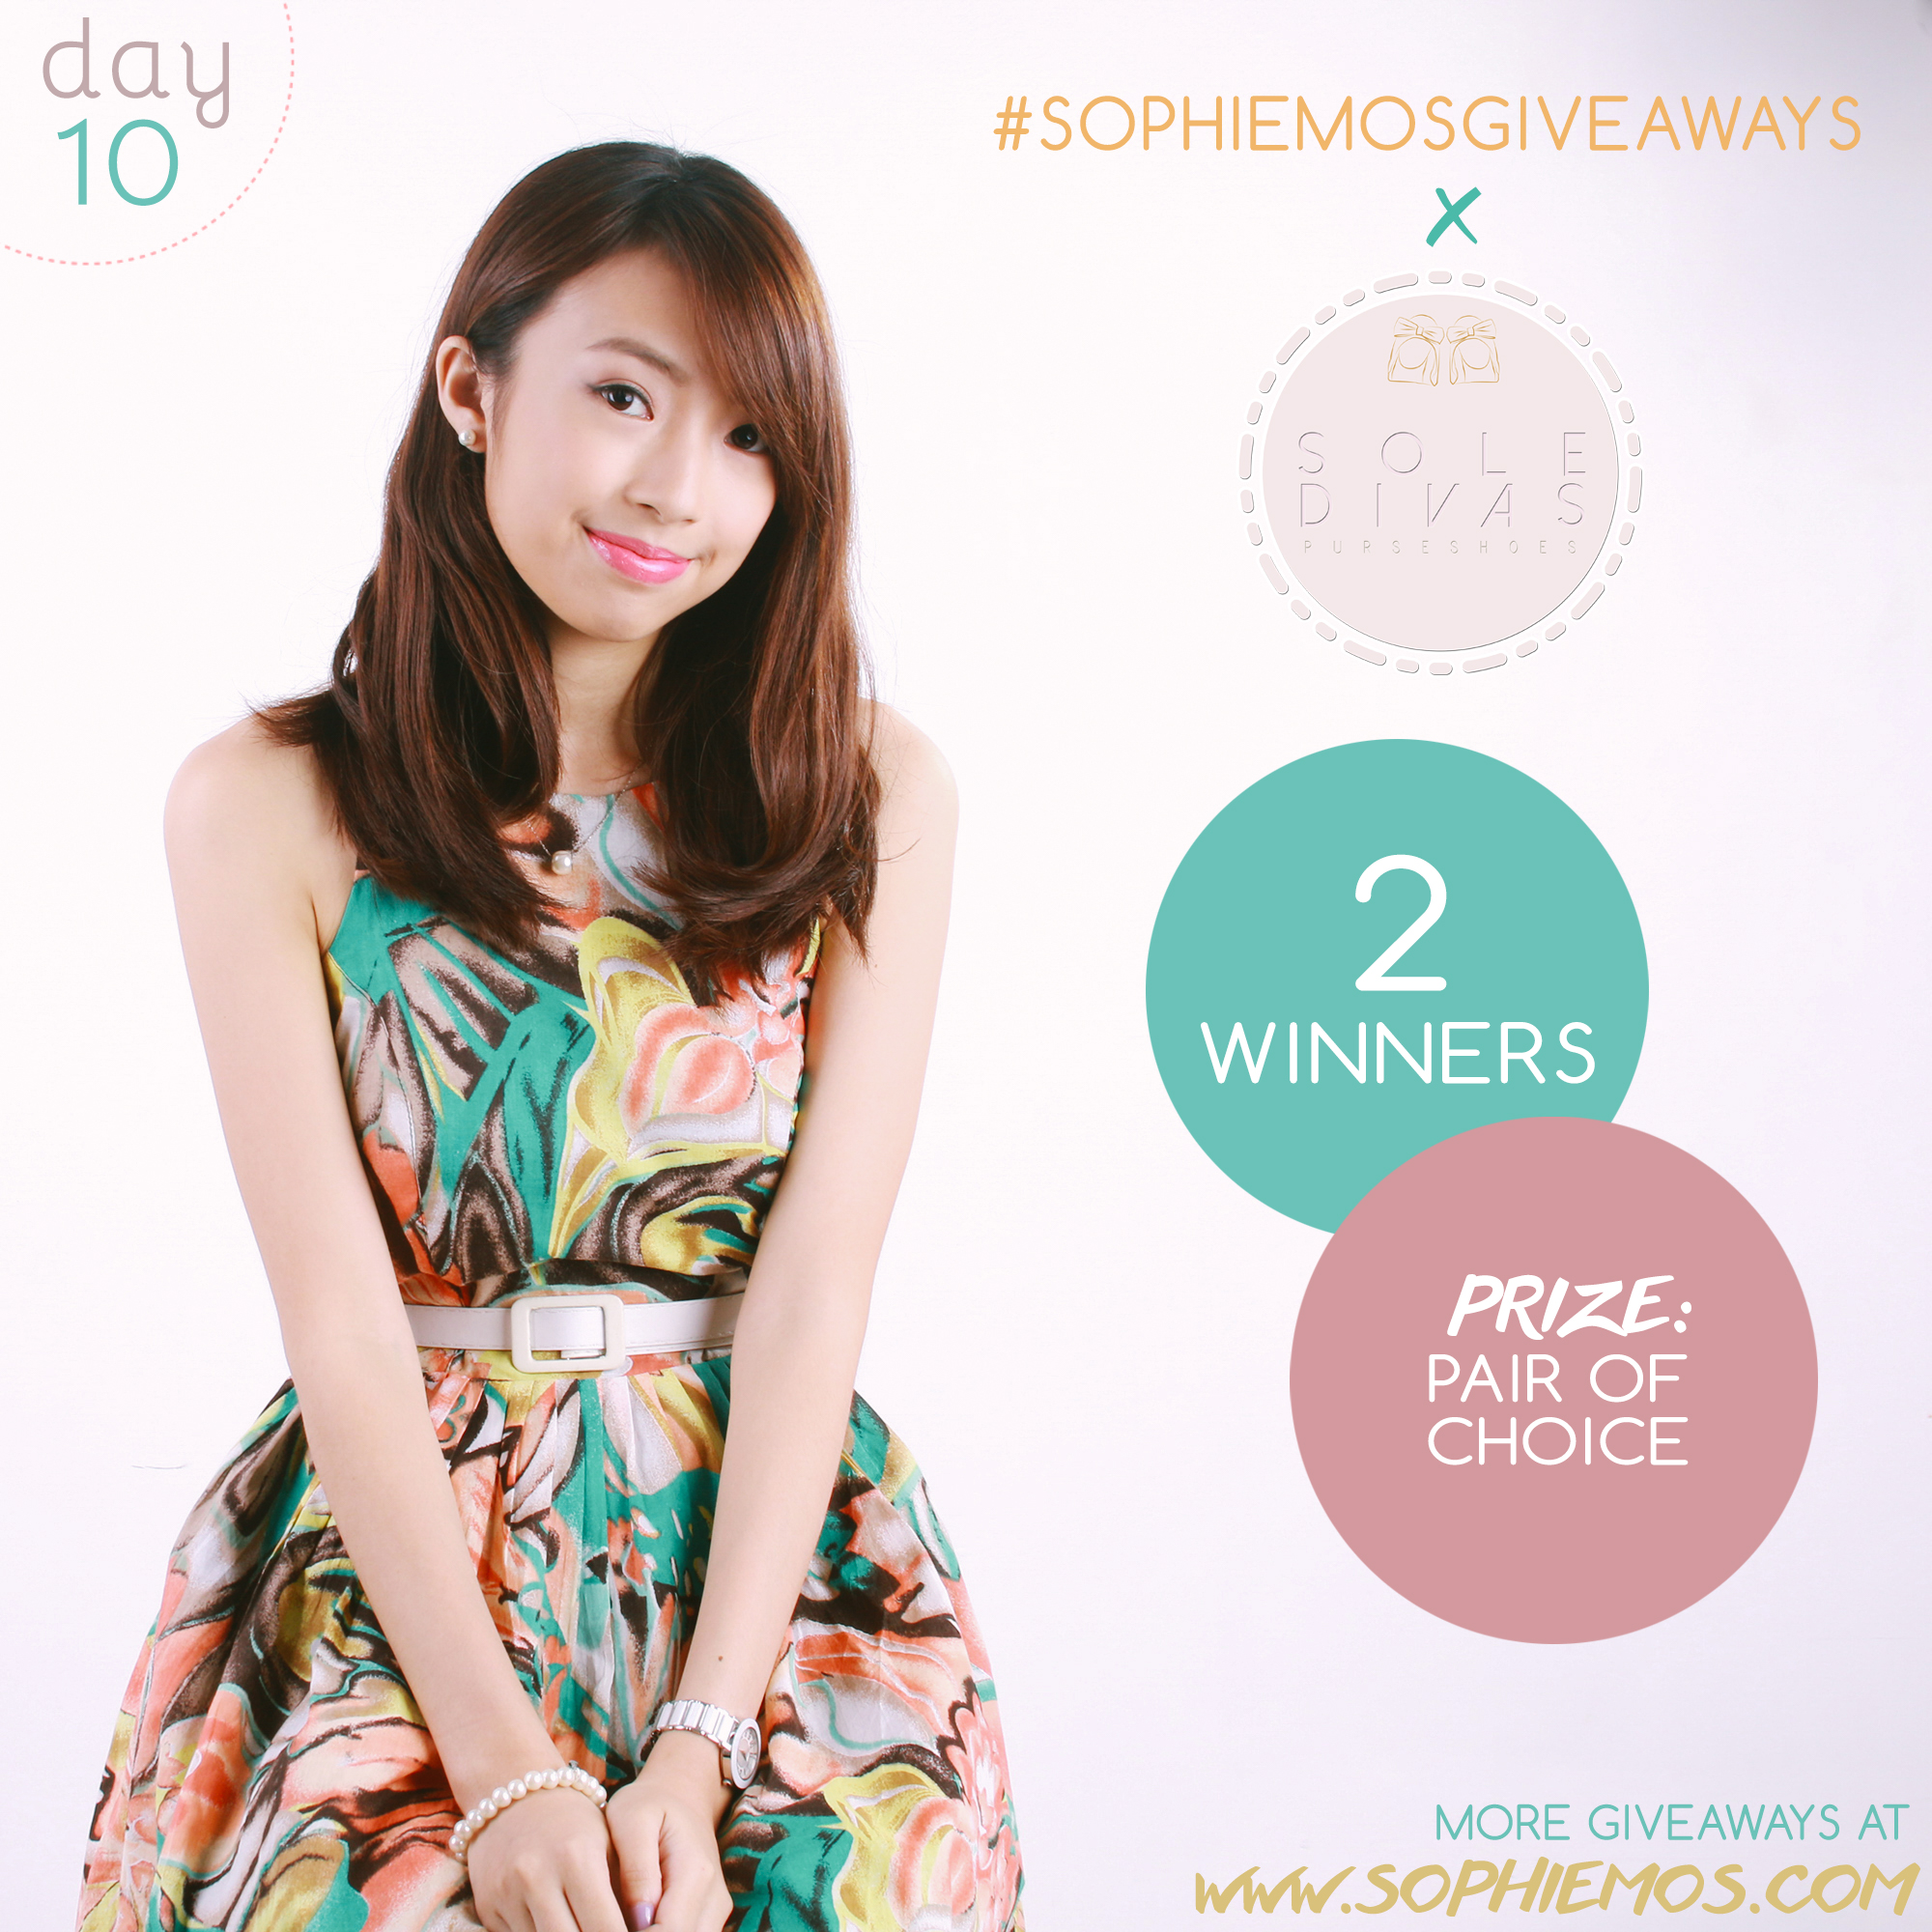 [CLOSED] DAY 10 OF #SOPHIEMOSGIVEAWAYS: SOLE DIVAS